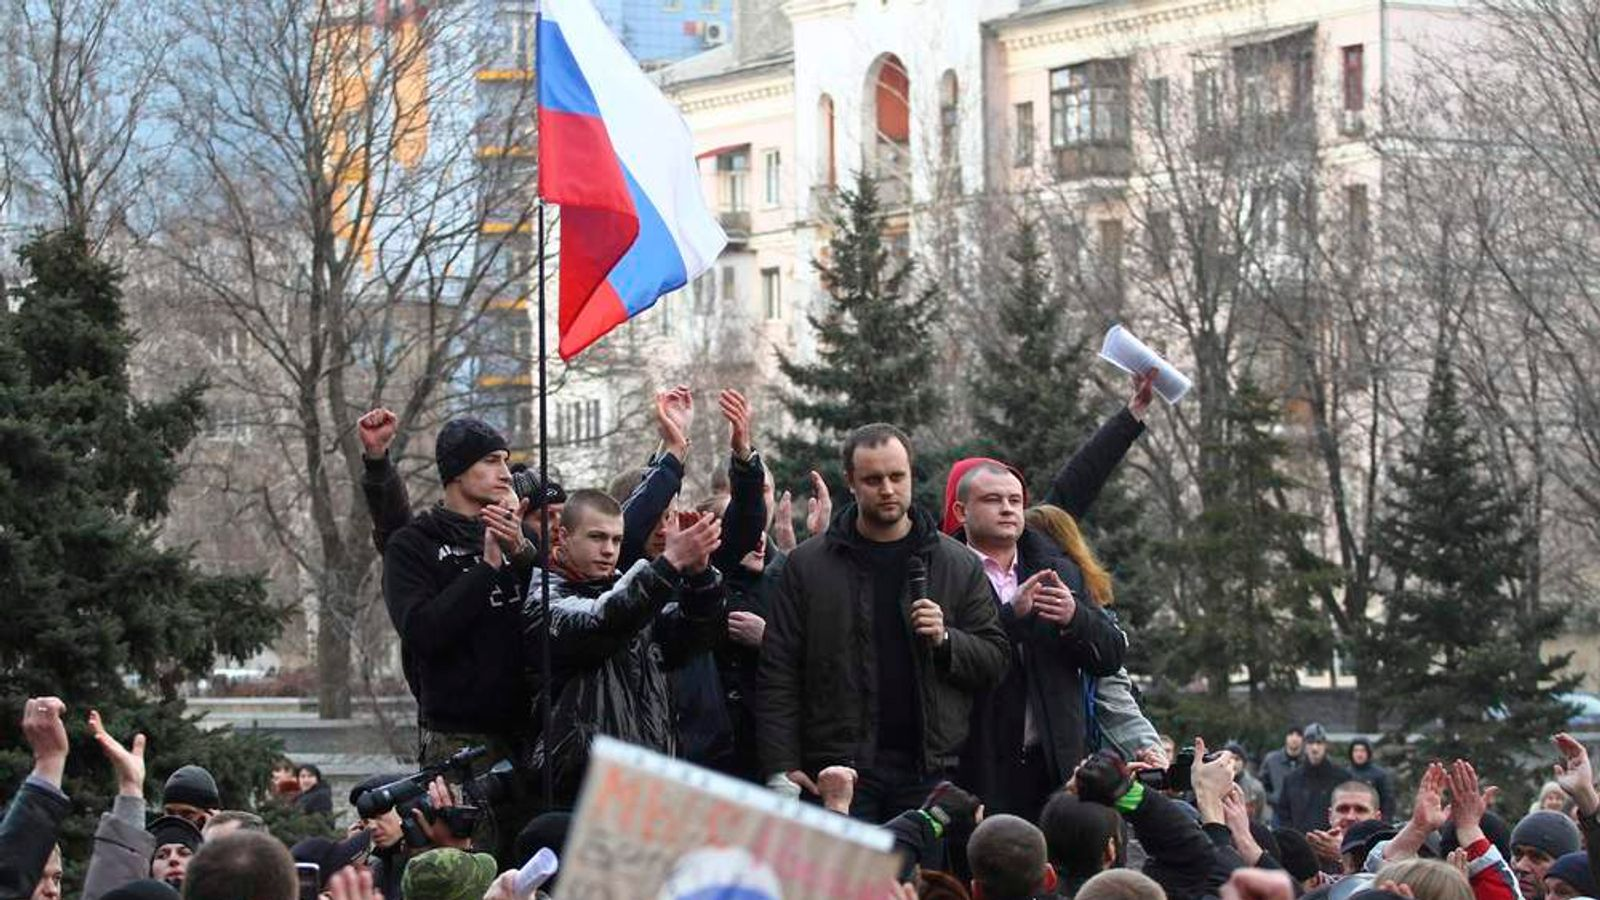 Protest leader Gubarev and other pro-Russian demonstrators take part in a rally in front of regional government building in Donetsk